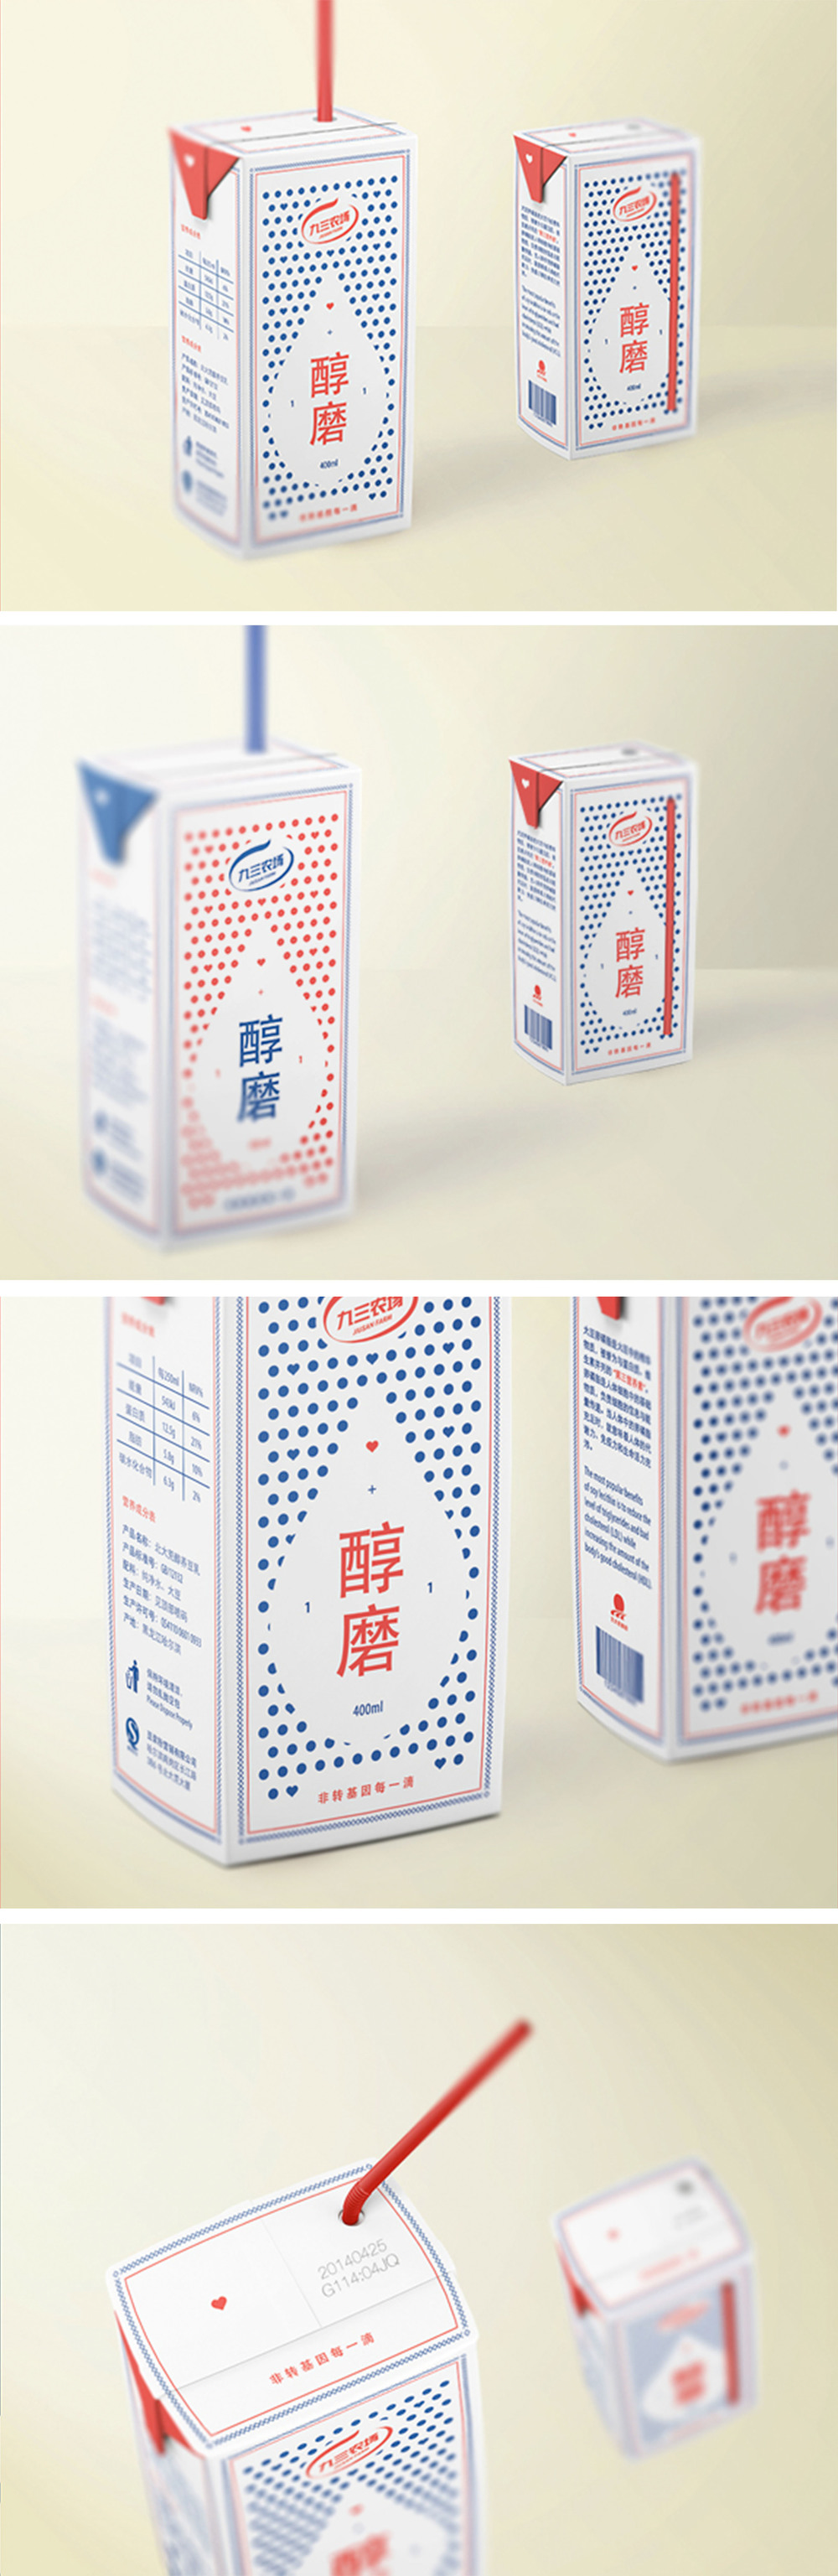 Cute packaging design, gullig förpackningsdesign